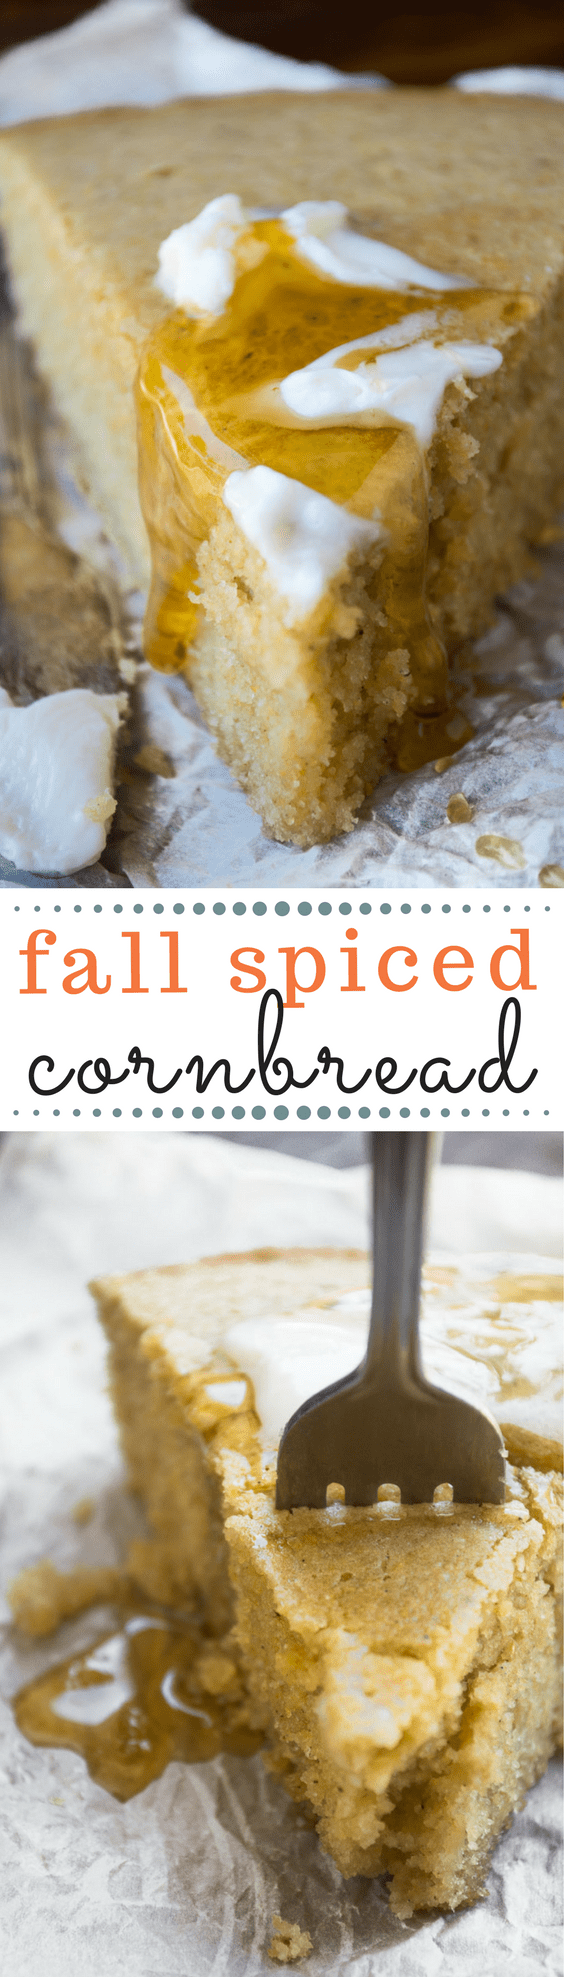 Fall Spiced Cornbread ~ this moist skillet cornbread is warmed up with a touch of cinnamon, clove, nutmeg, and ginger, making it the perfect side for all your fall soups and stews! | quick bread | fall recipes | skillet bread | side dish |